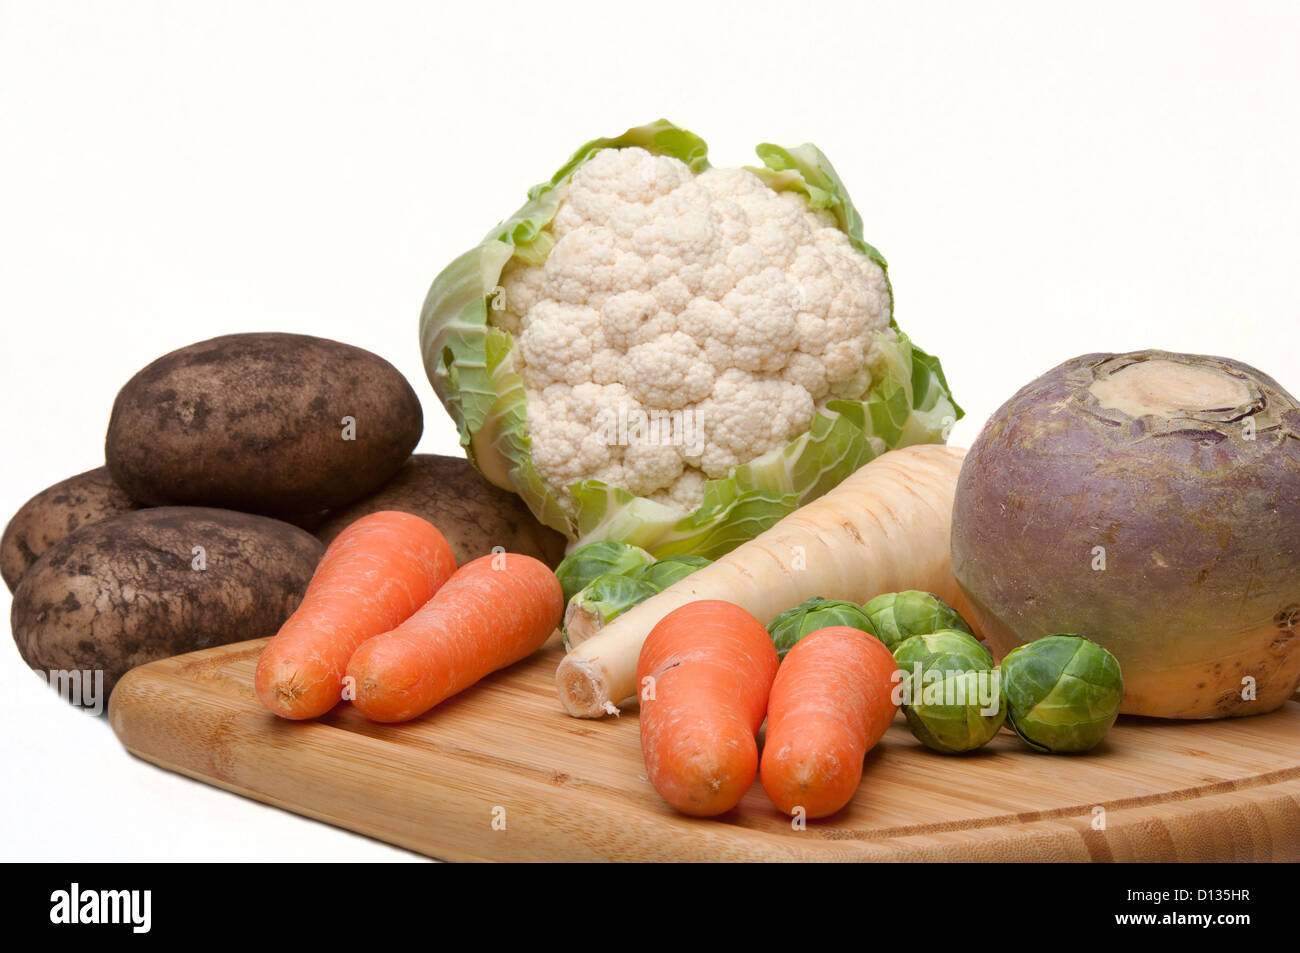 A selection of winter vegetables including swede,parsnip,carrots, brussel, potatoes and cauliflower on a white background - Stock Image